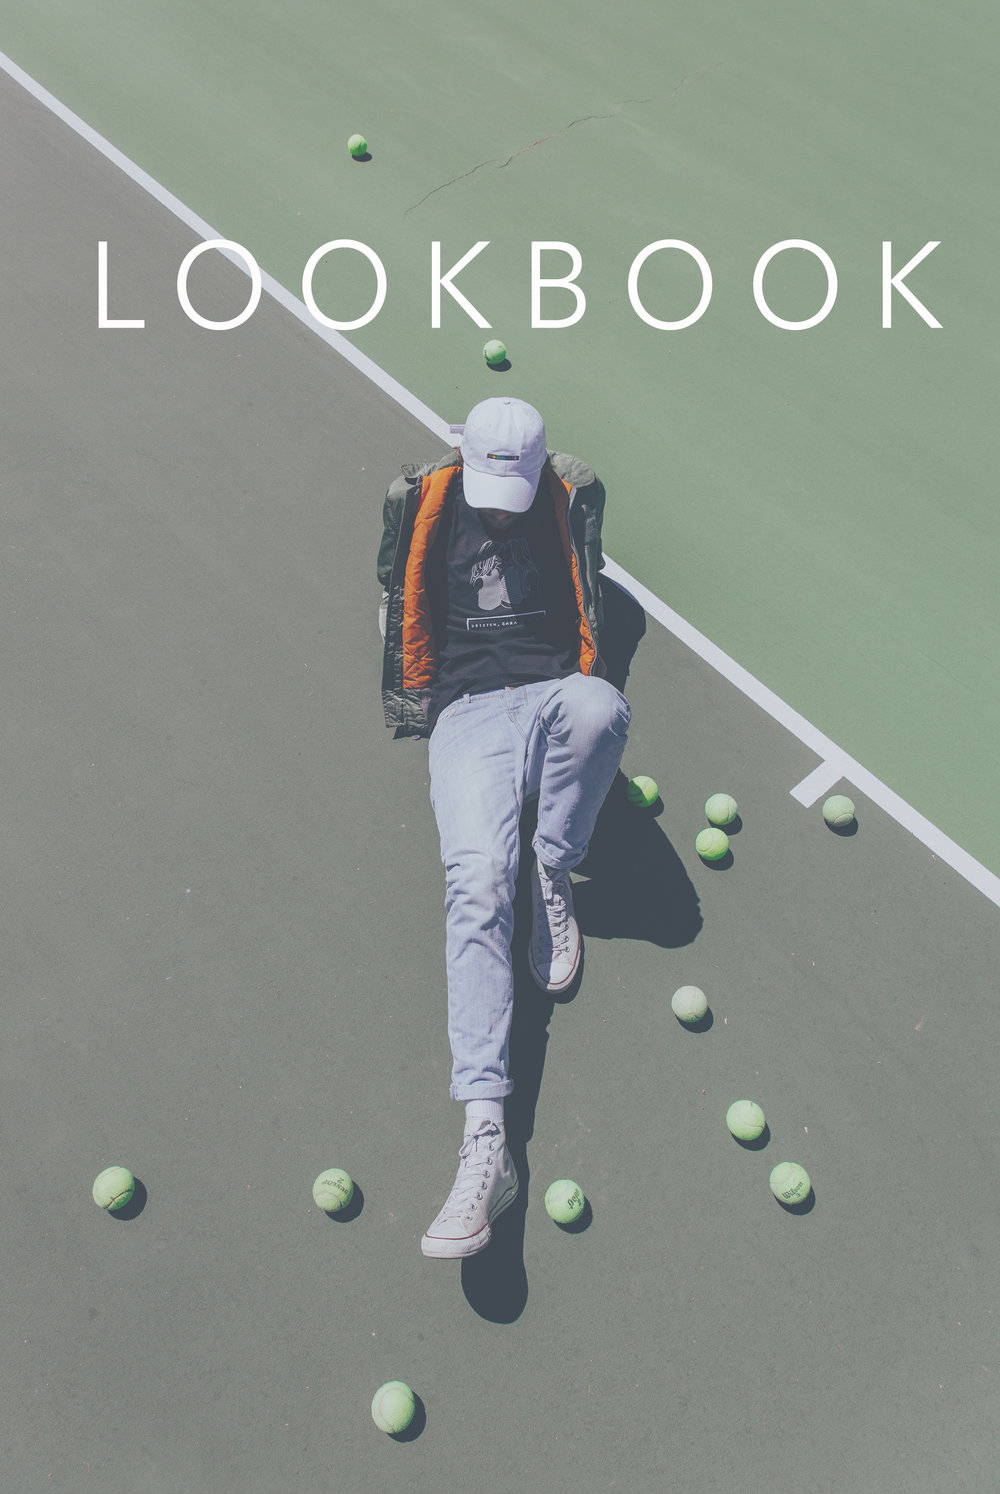 Lookbook cover.jpg